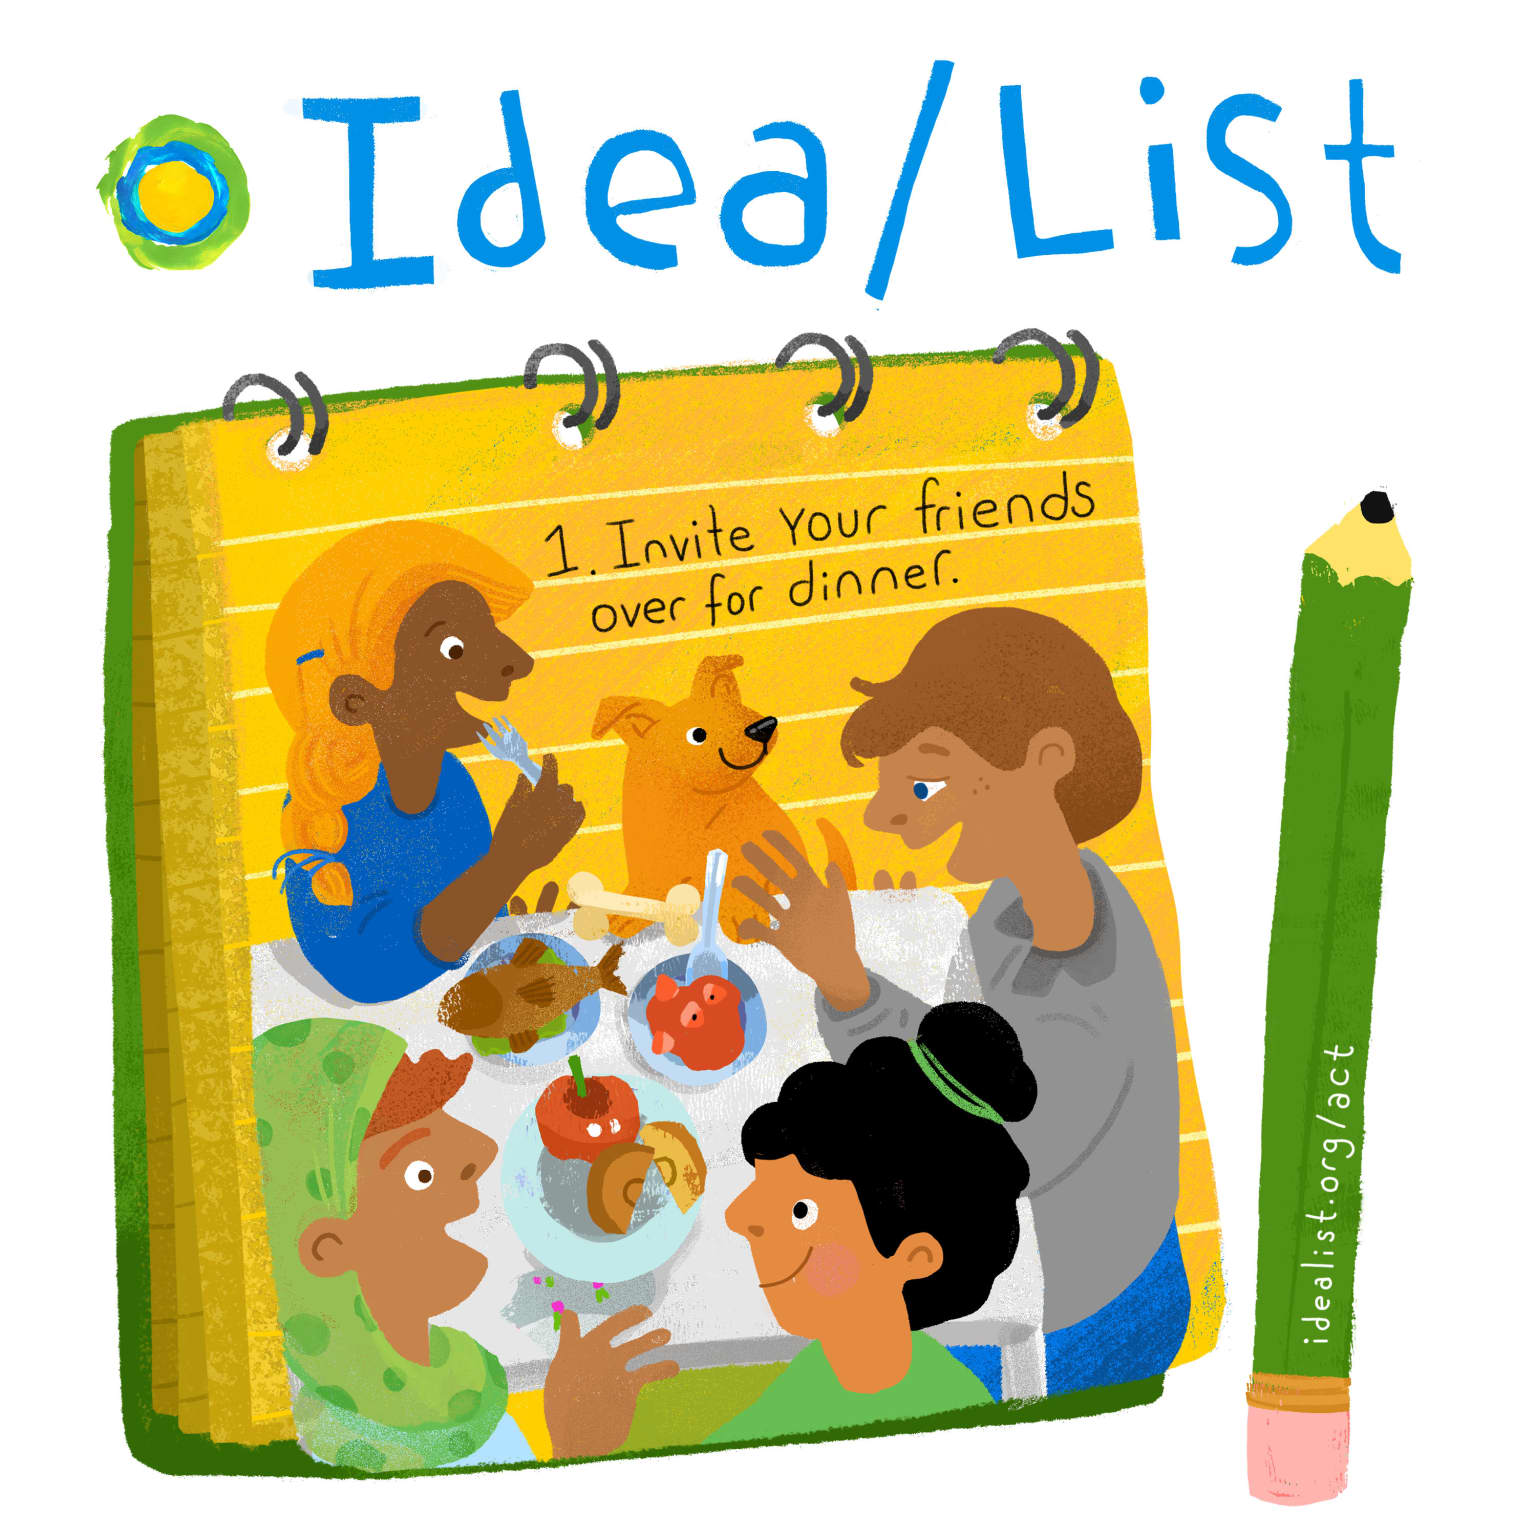 Social Content for Idealist.org